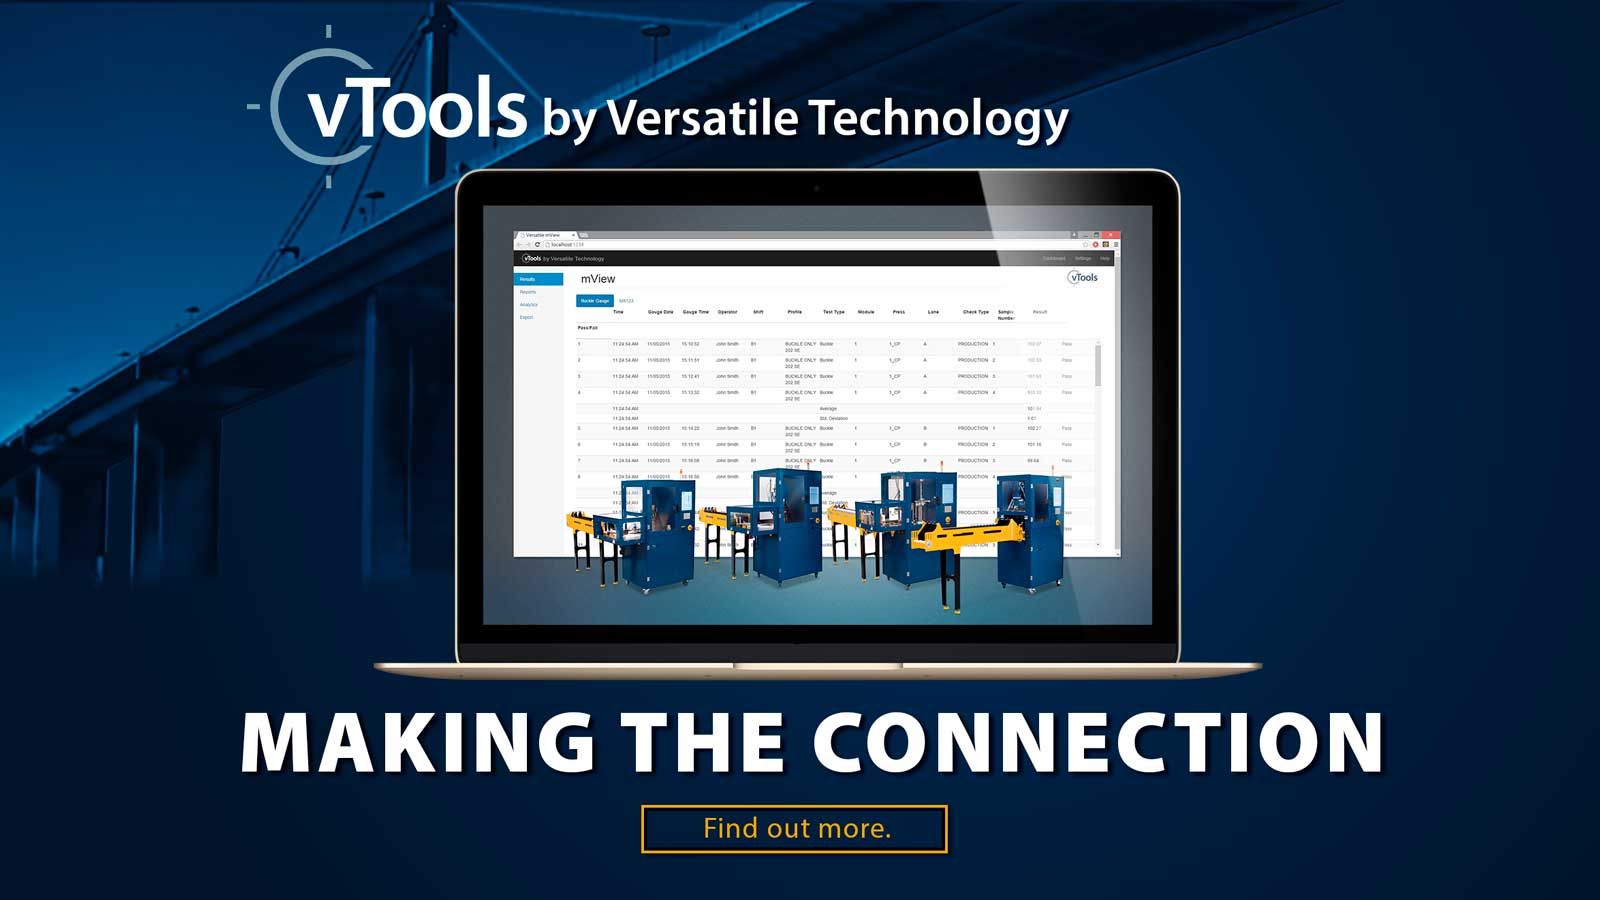 versatile-technology-vtools-making-the-connection-slider